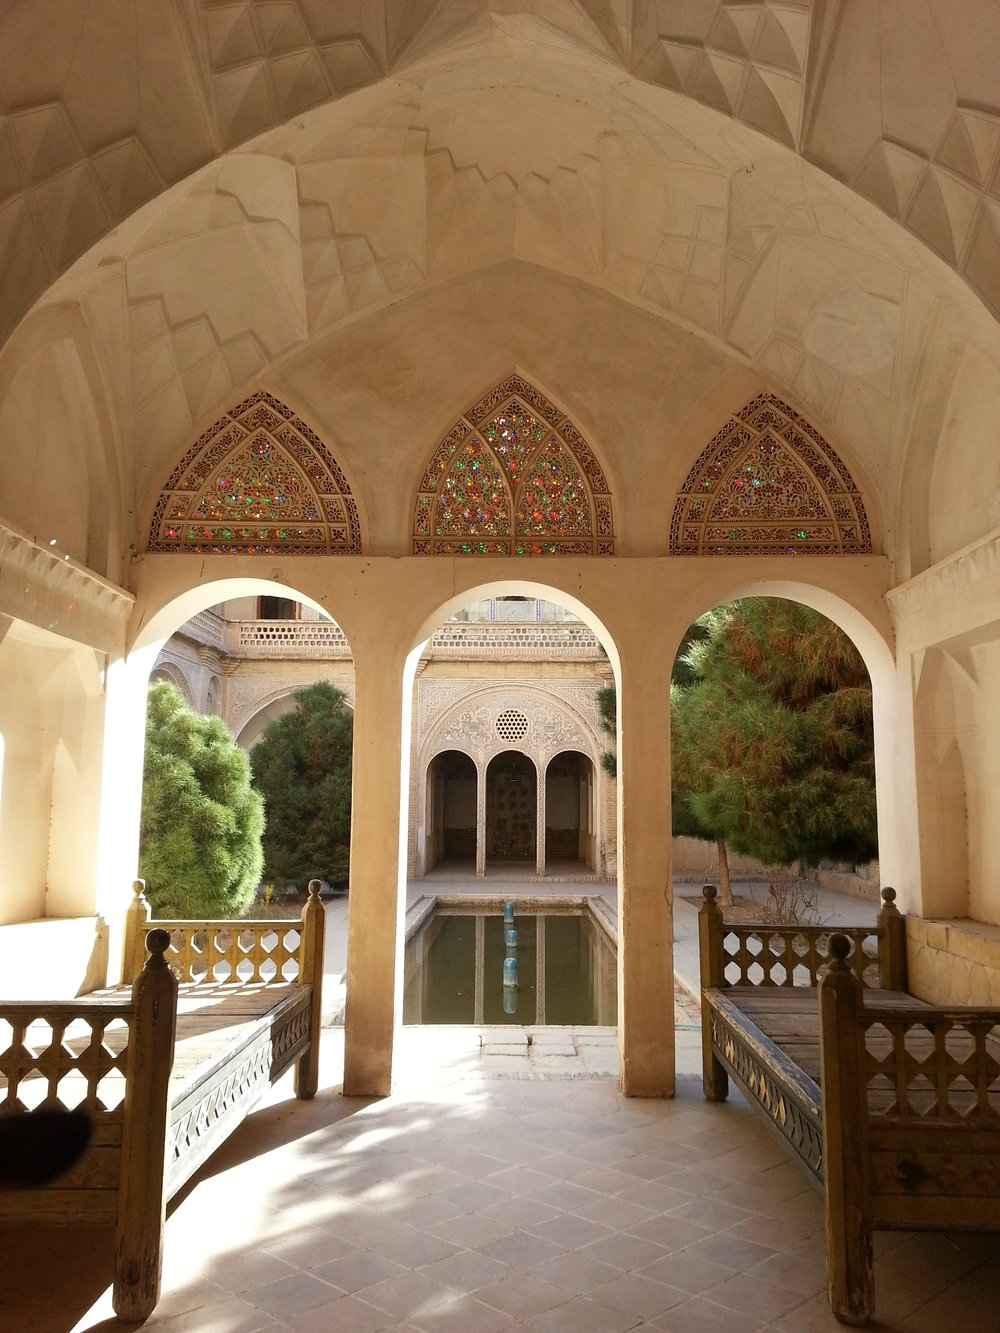 Abbasi House, a historic home located in Kashan, Iran